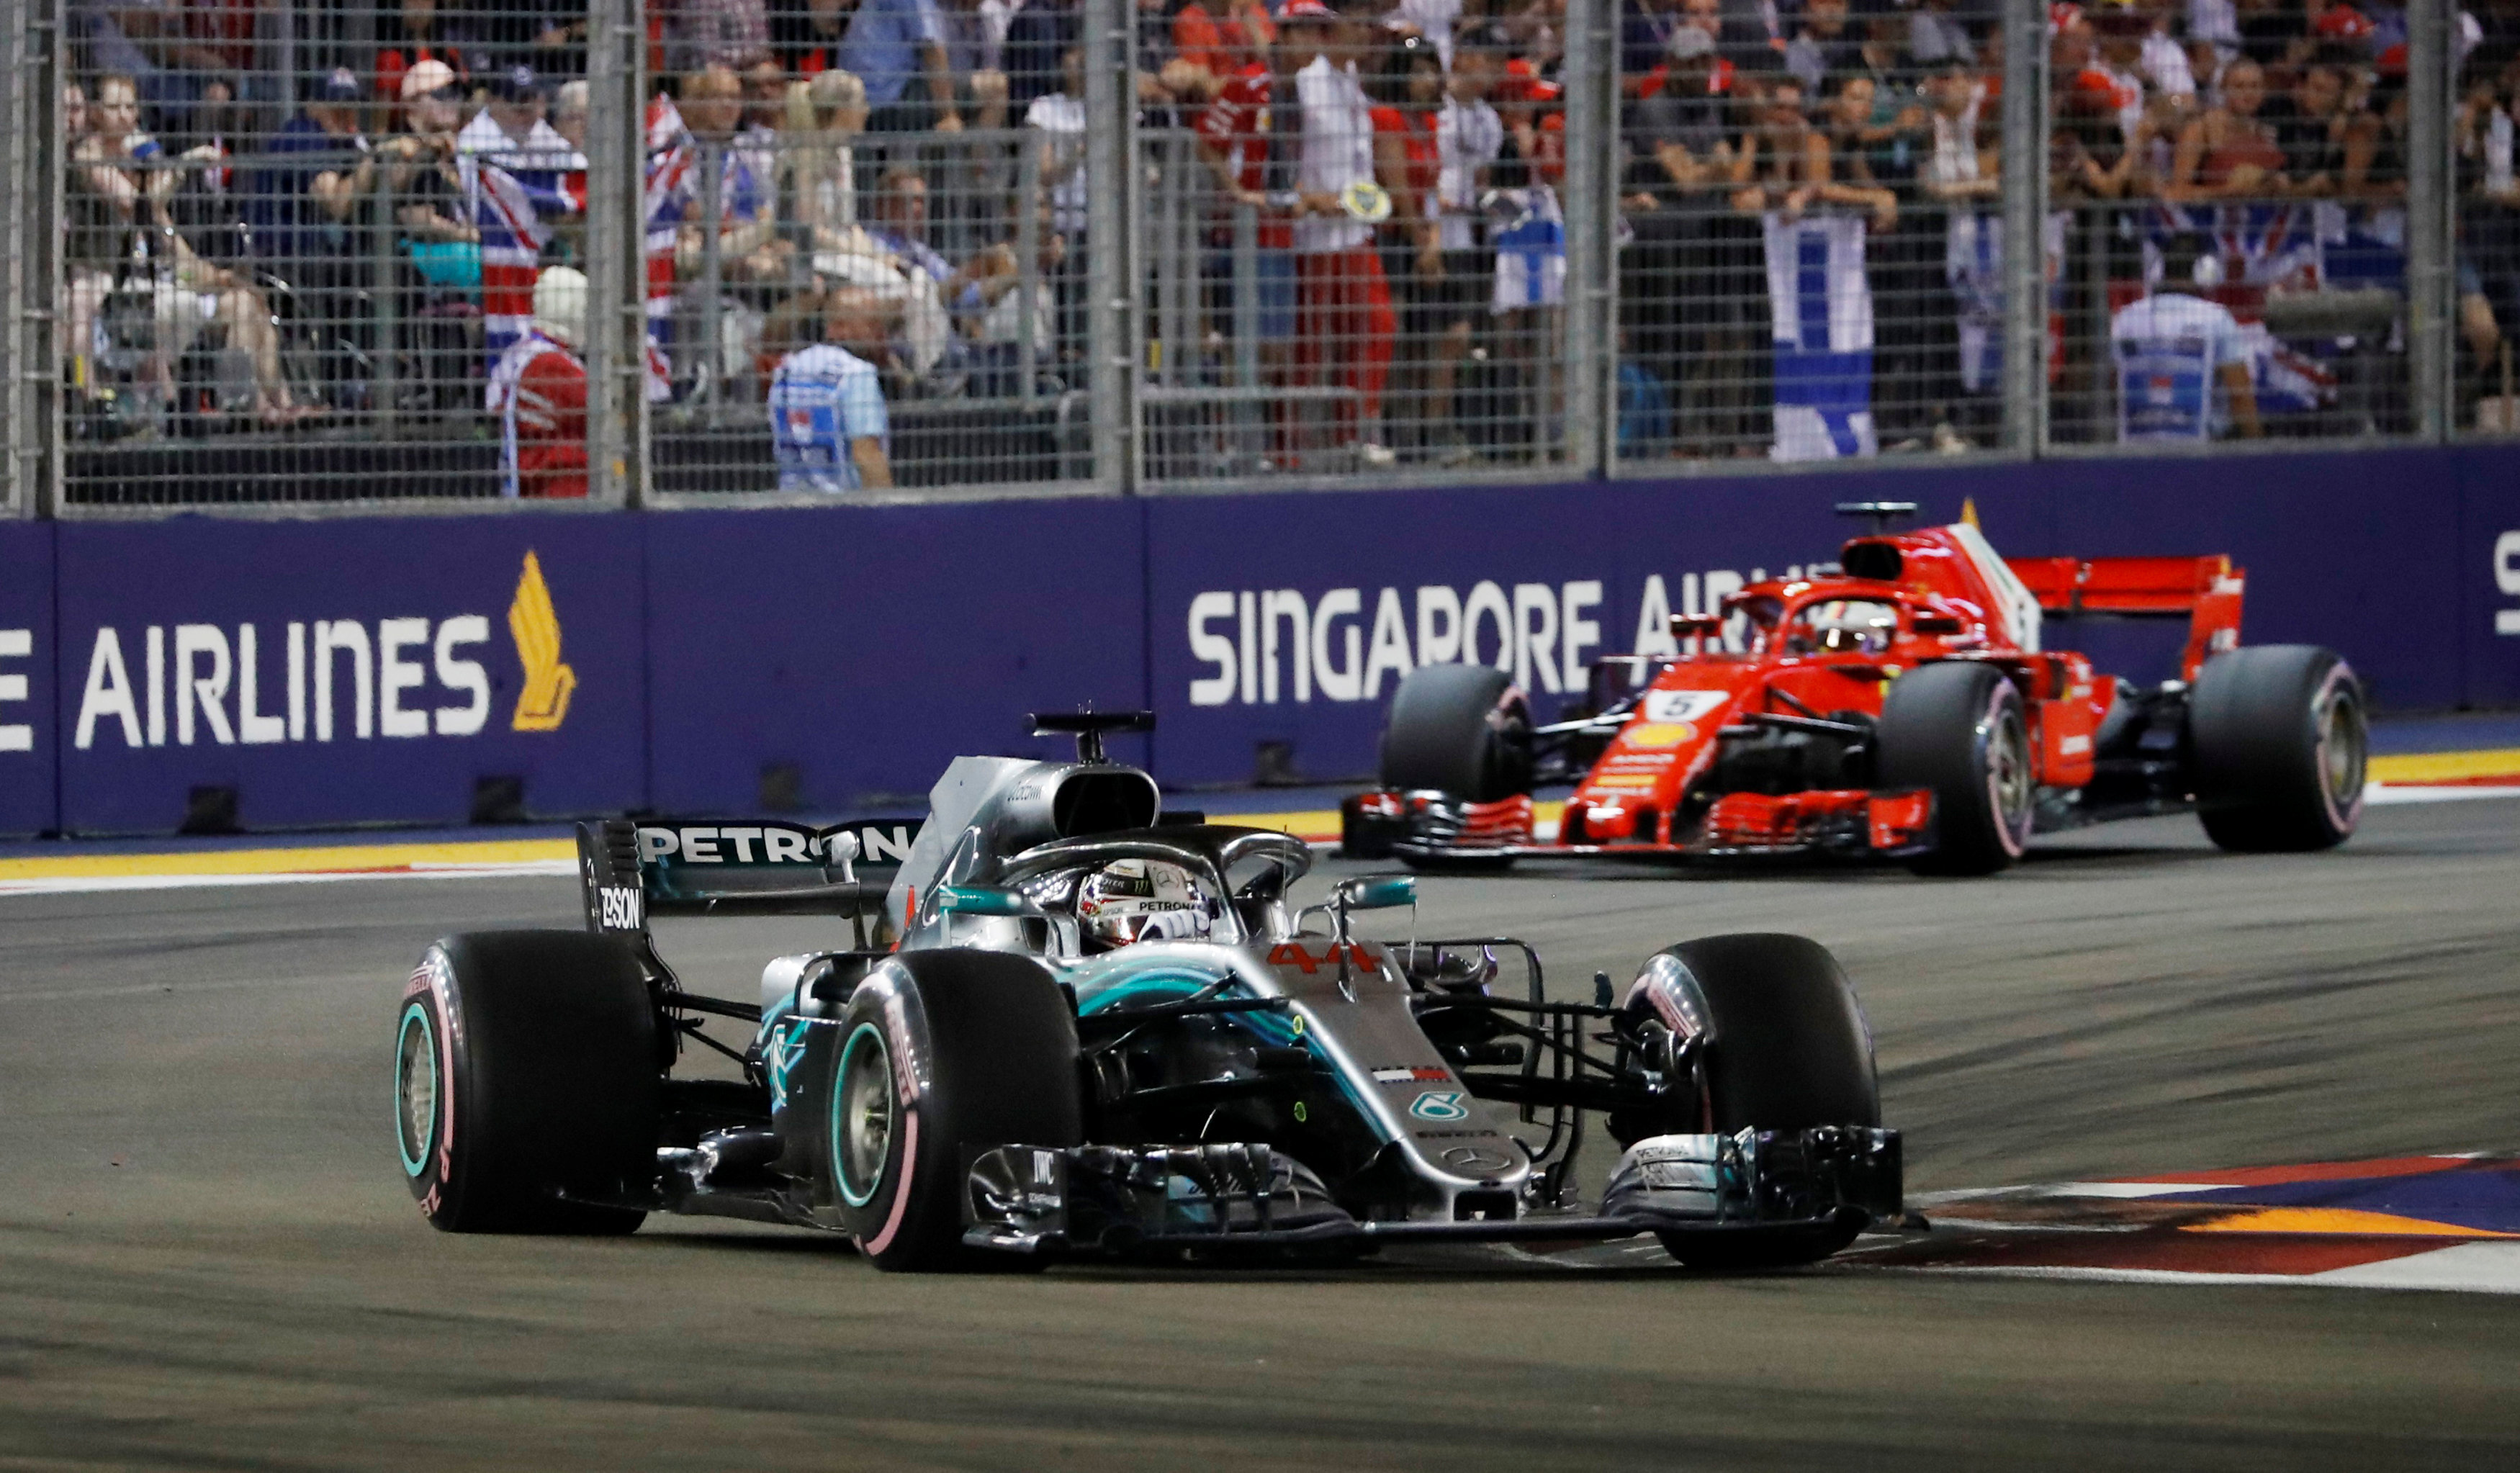 Formula 1: Hamilton radiation in Singapore